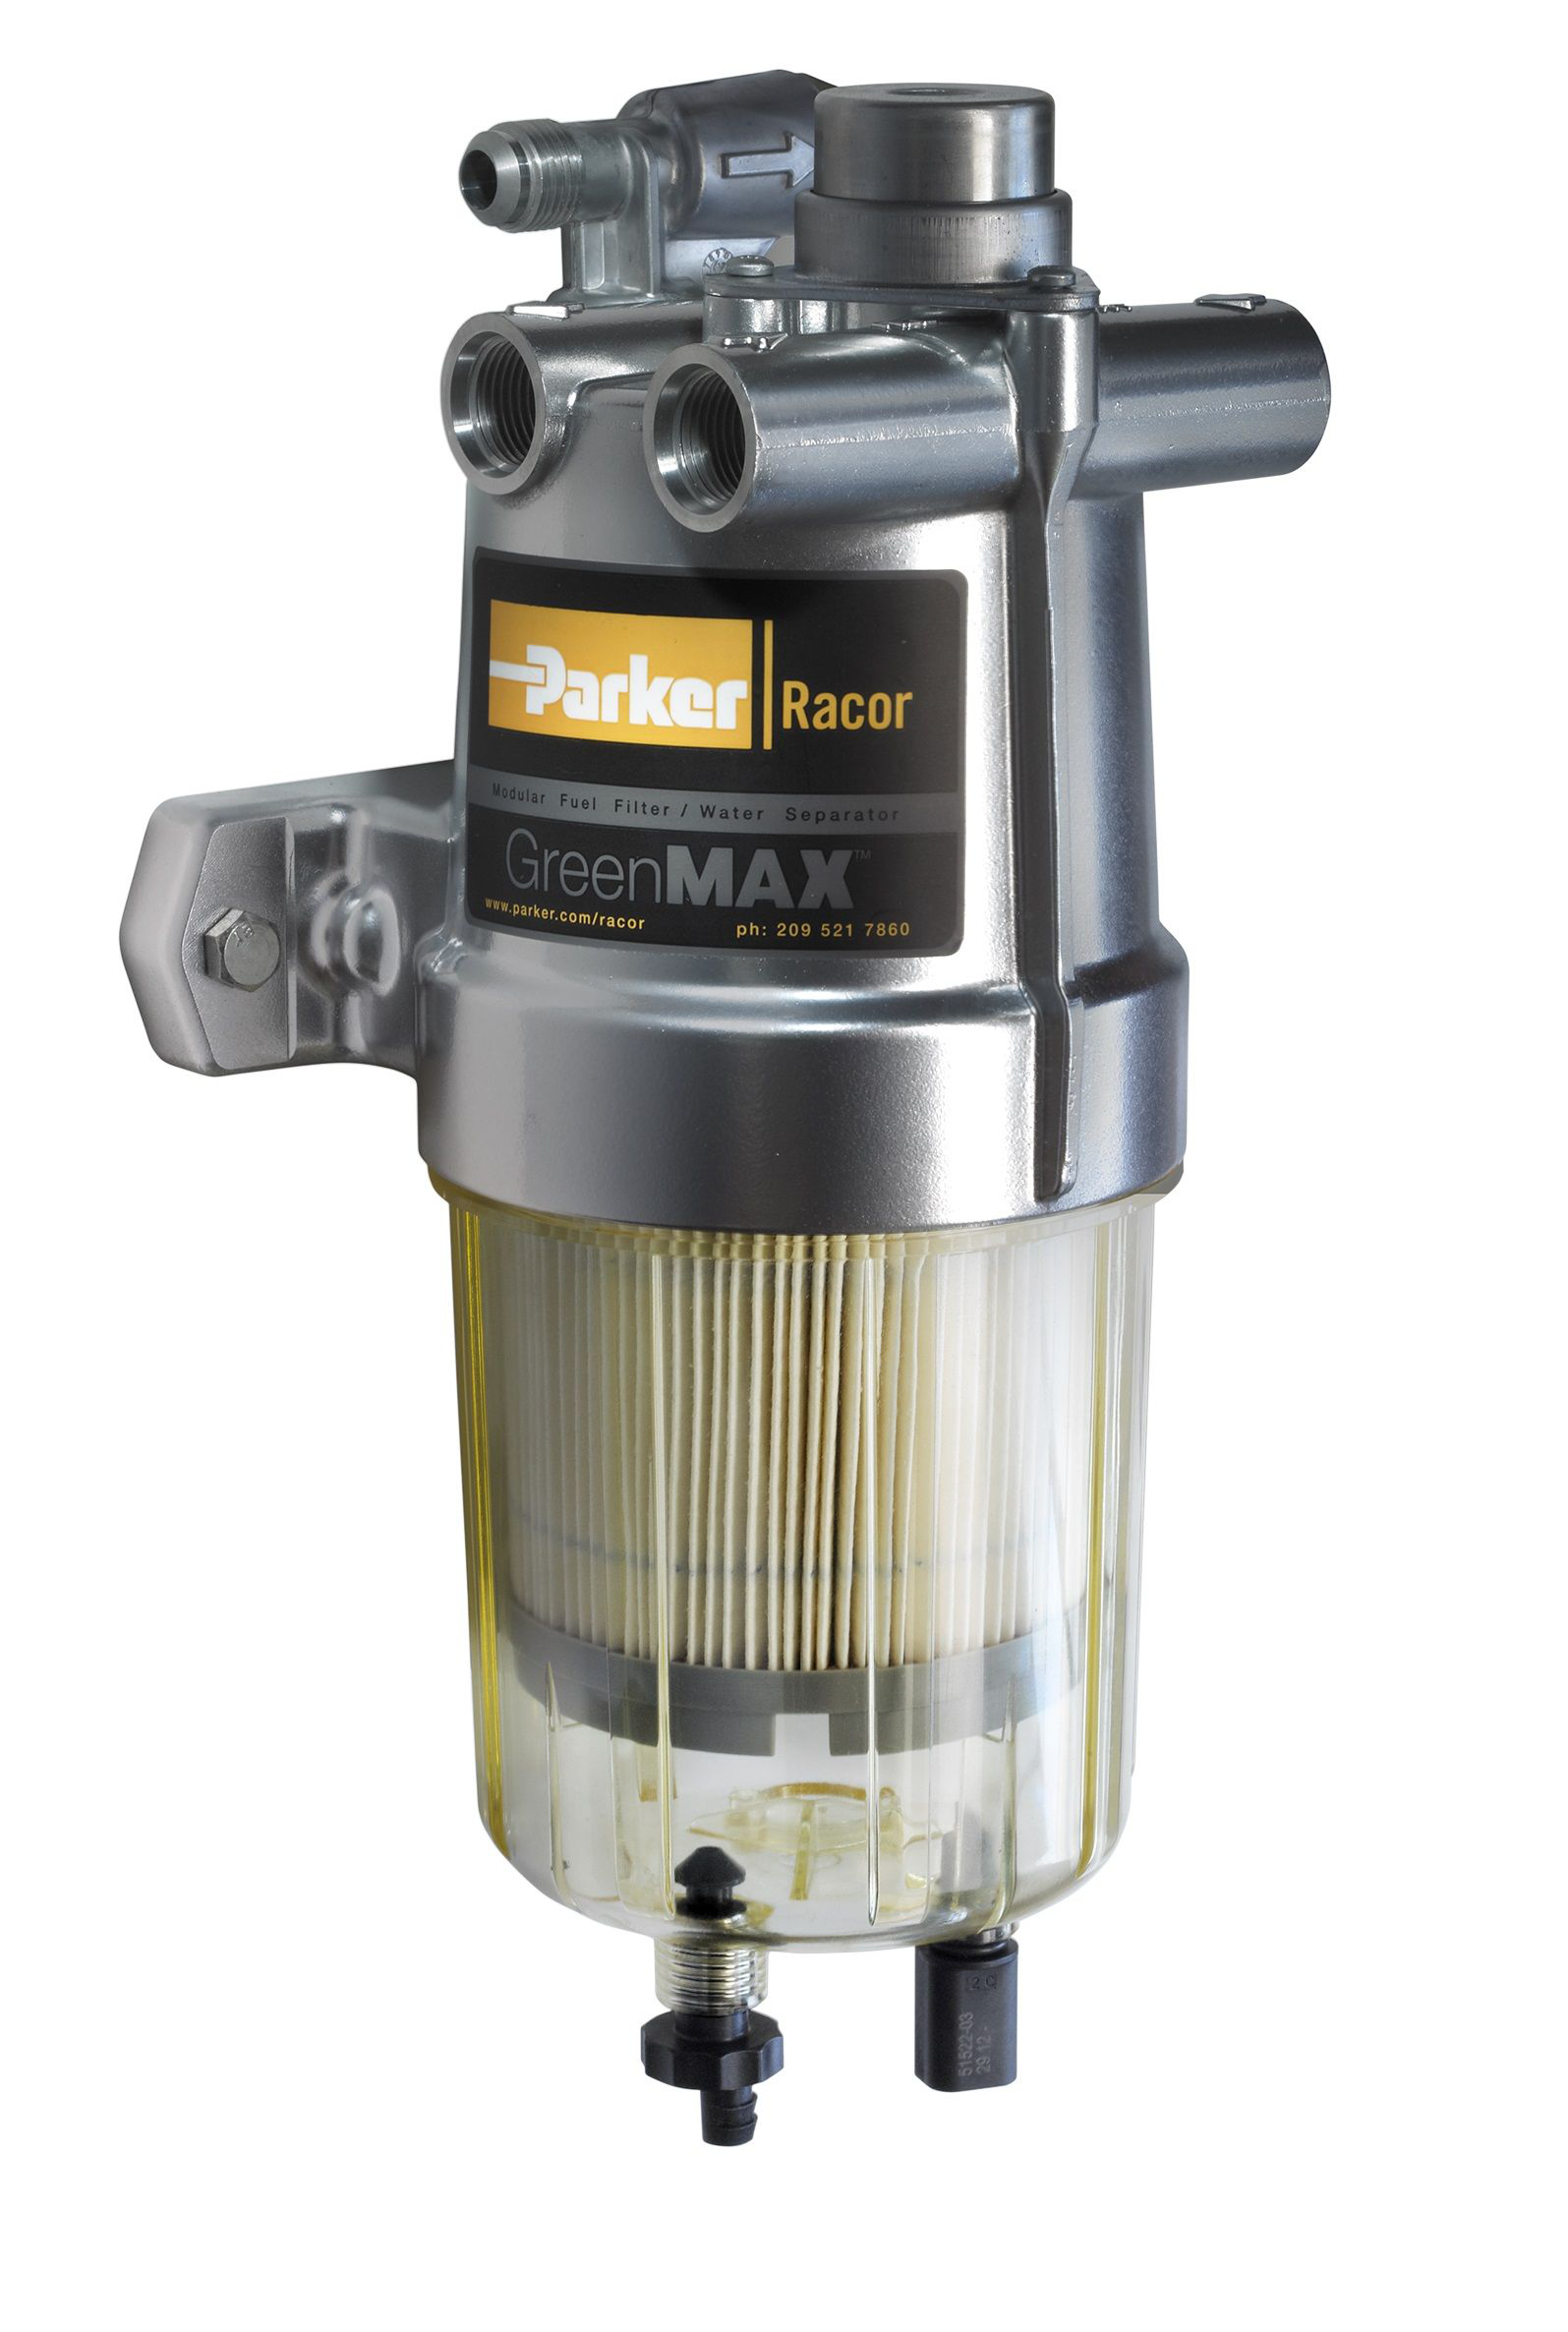 Racor's fuel filter/water separator on